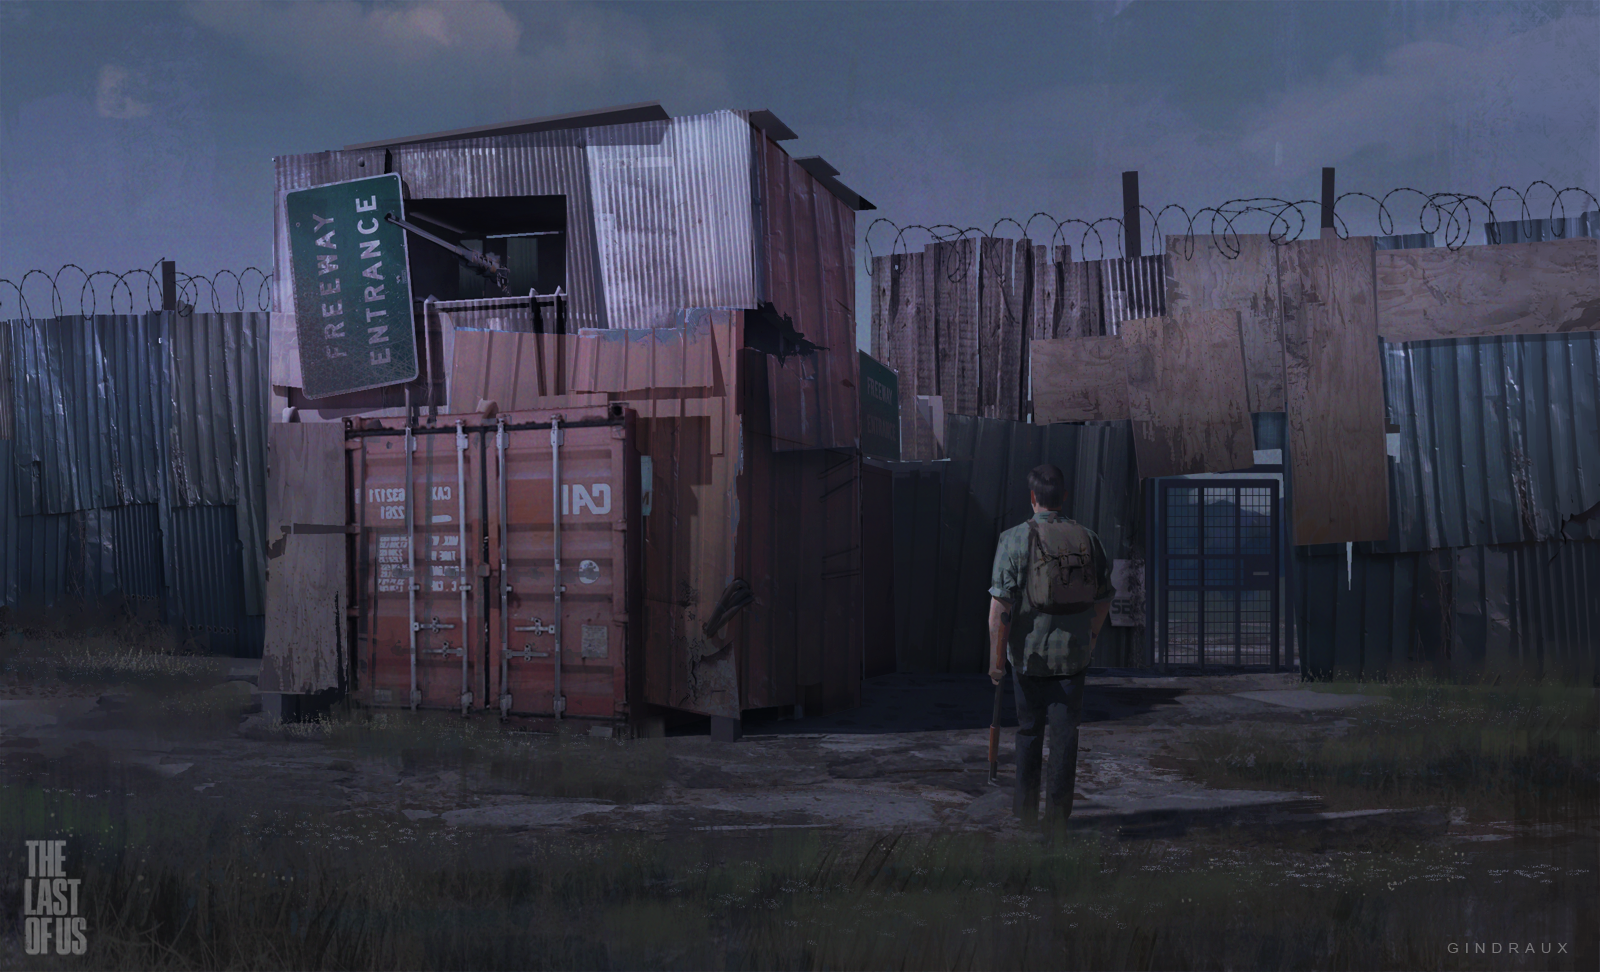 http://www.gamepur.com/files/images/2014/naughty-dog/naughty-dog-concept-artist-the-last-of-us-work-image-5.png